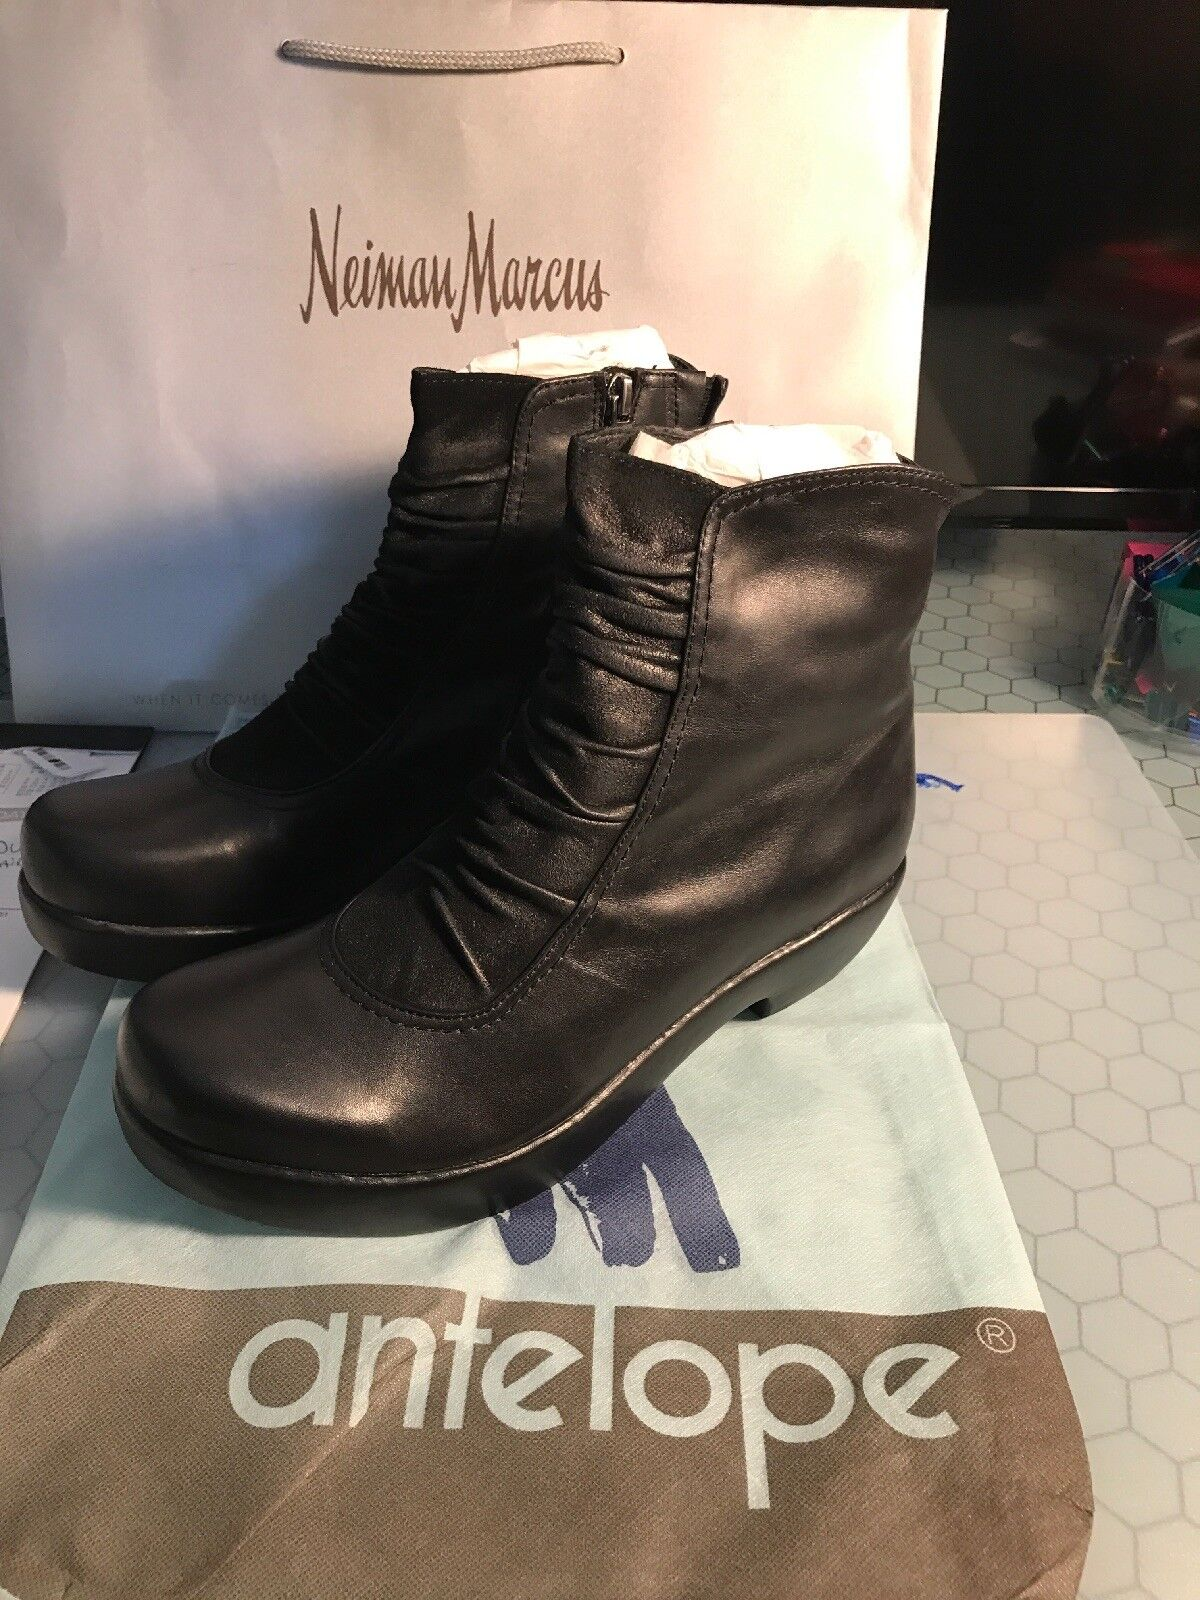 Antelope 576 Ankle Boot Black Suede   Leather Size 41 Women's NIB